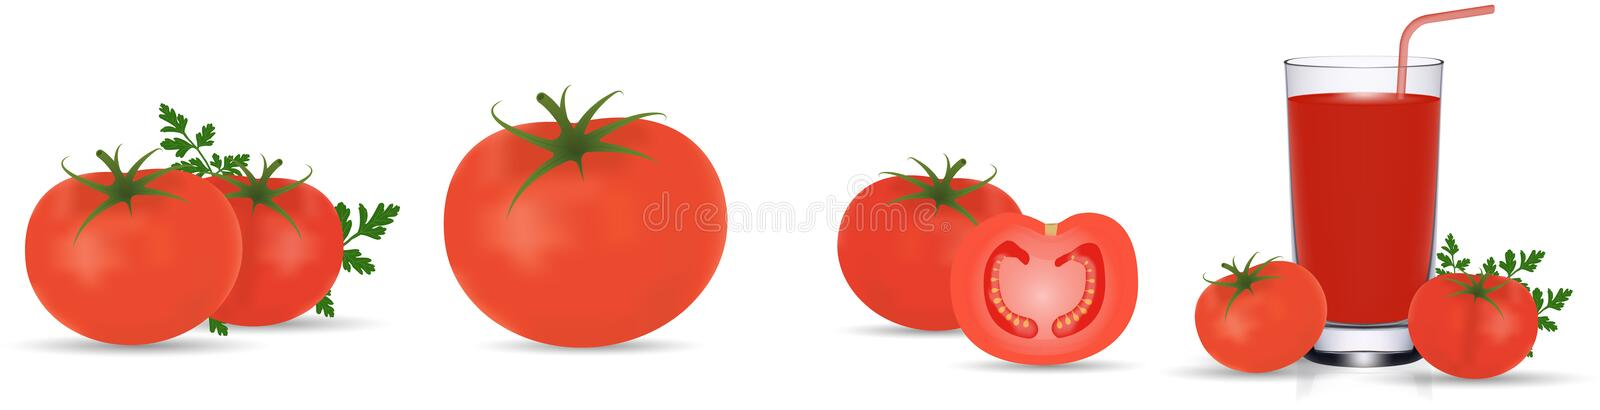 Tomato collection. Photo realistic fresh red ripe tomatoes with green leaves isolated on white background. 3d vector vector illustration